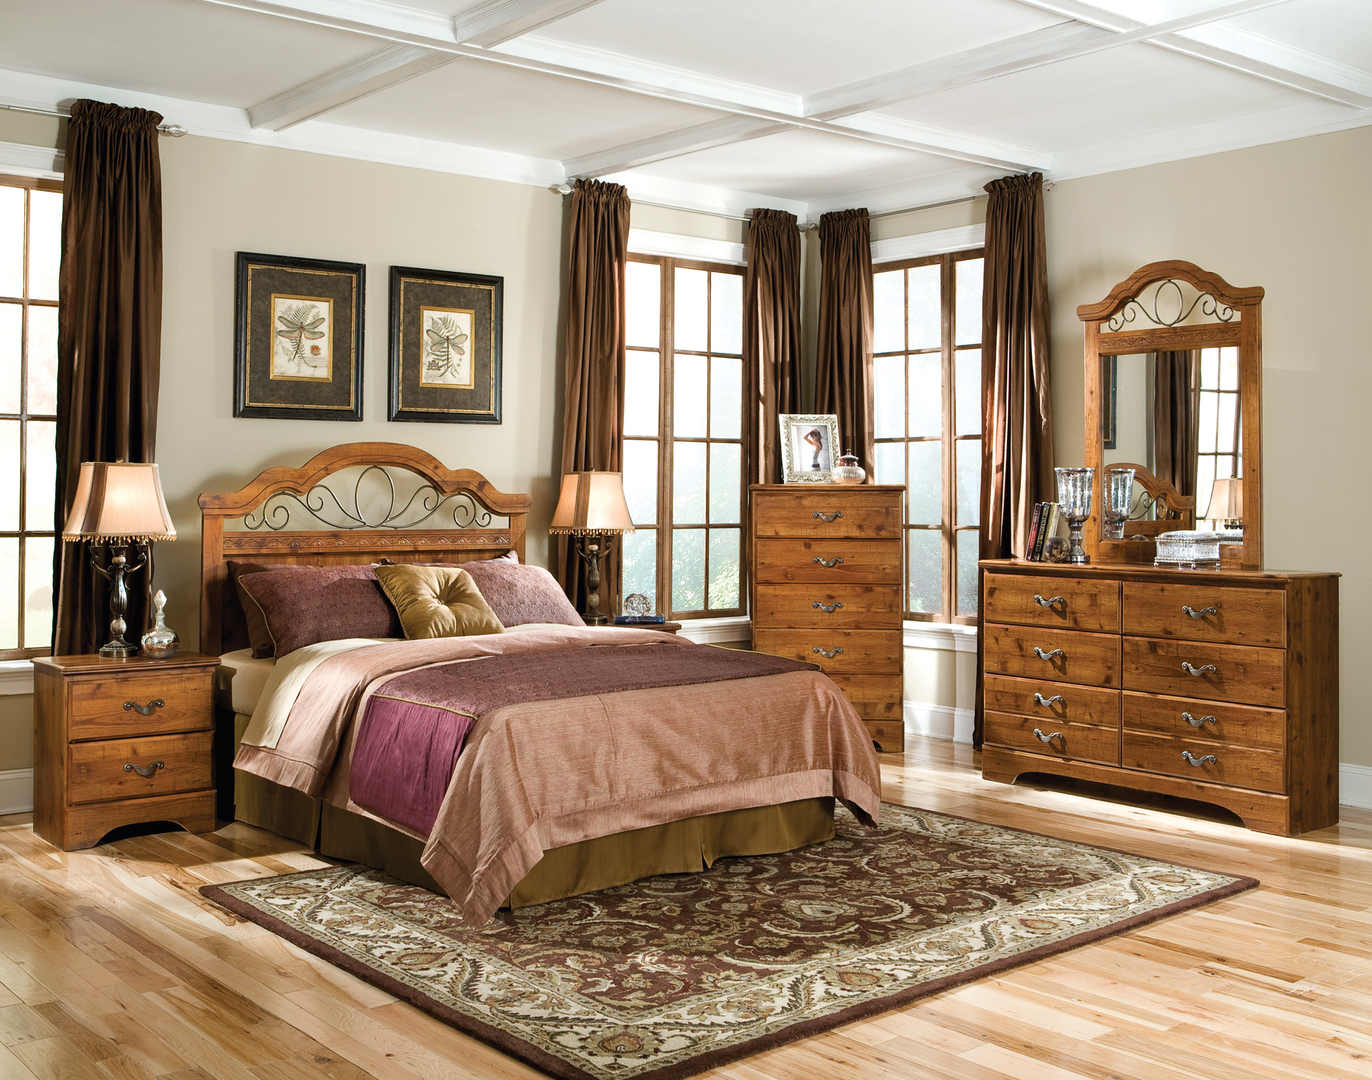 Marseille Bedroom Furniture Bedrooms